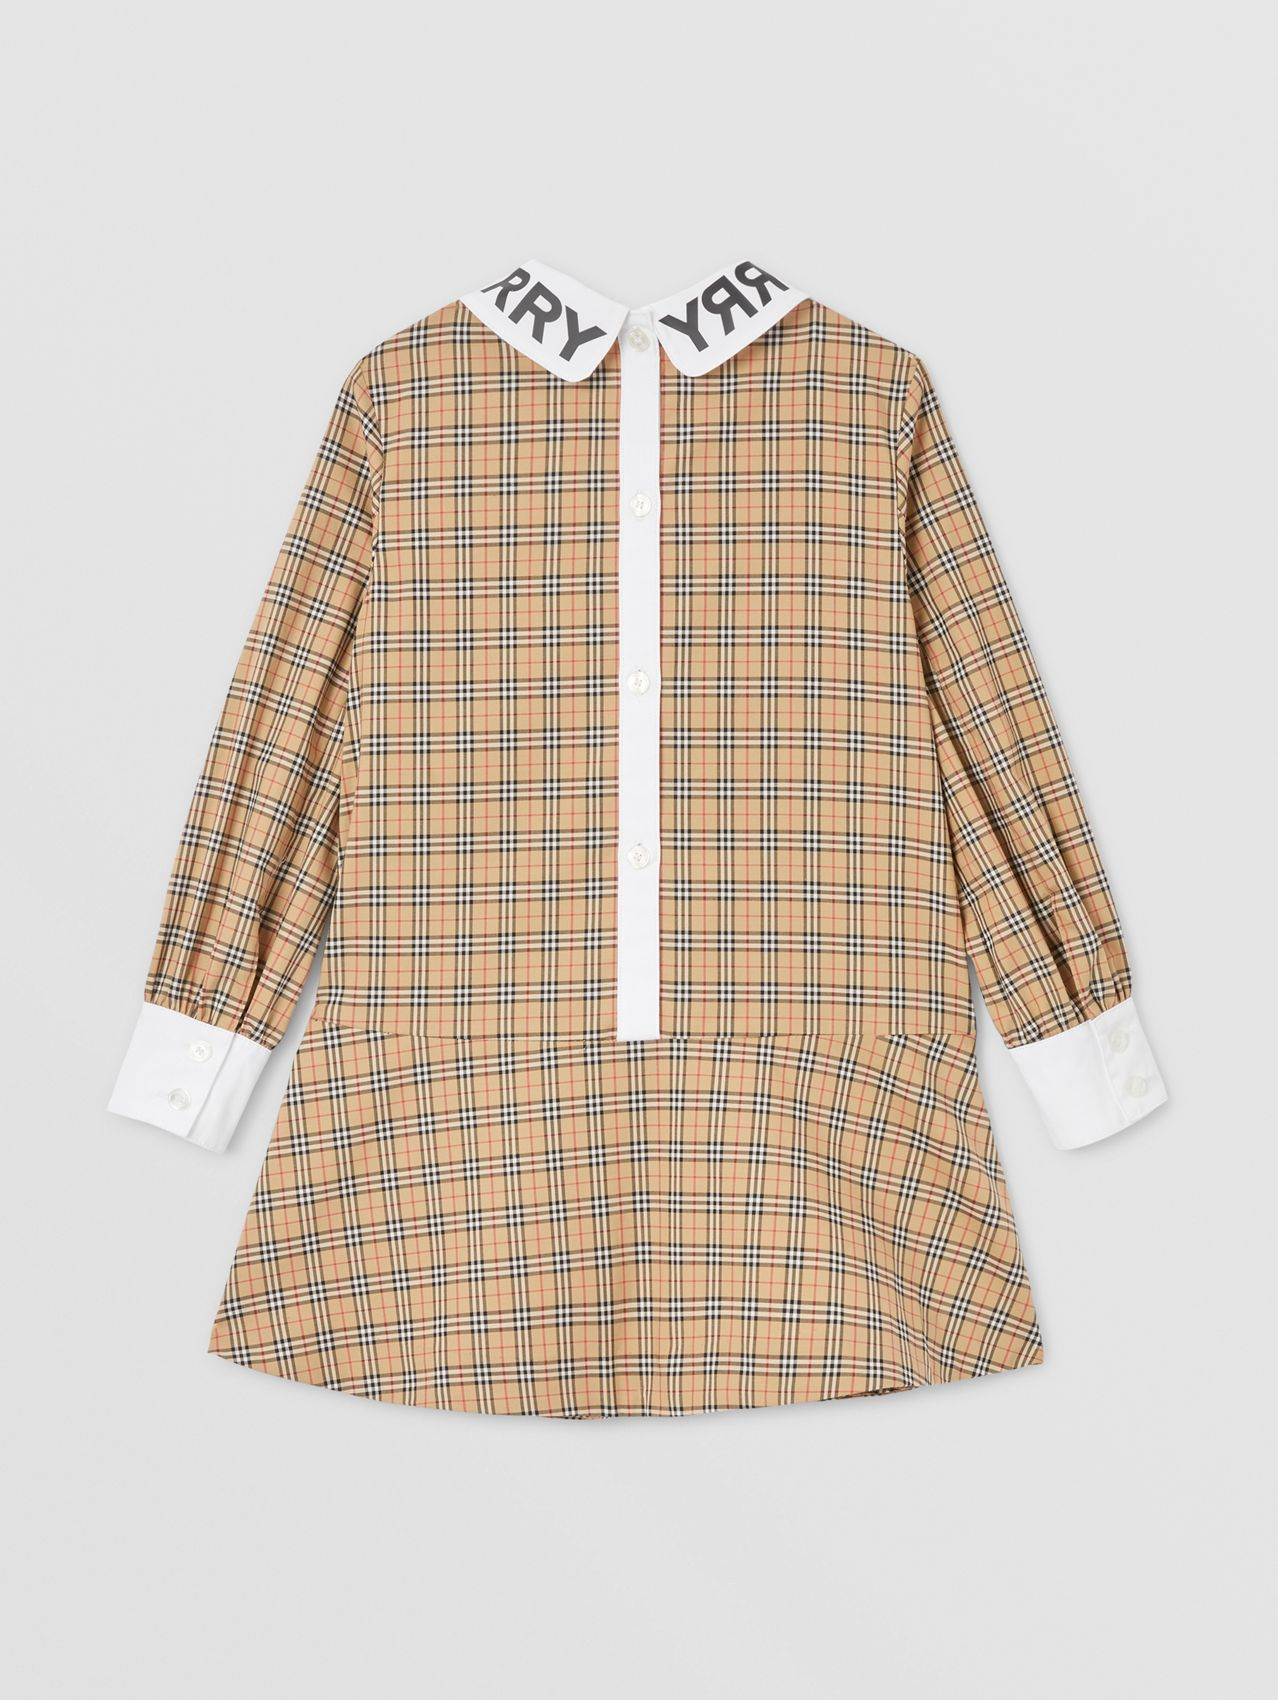 Logo Print Collar Check Stretch Cotton Dress in Archive Beige